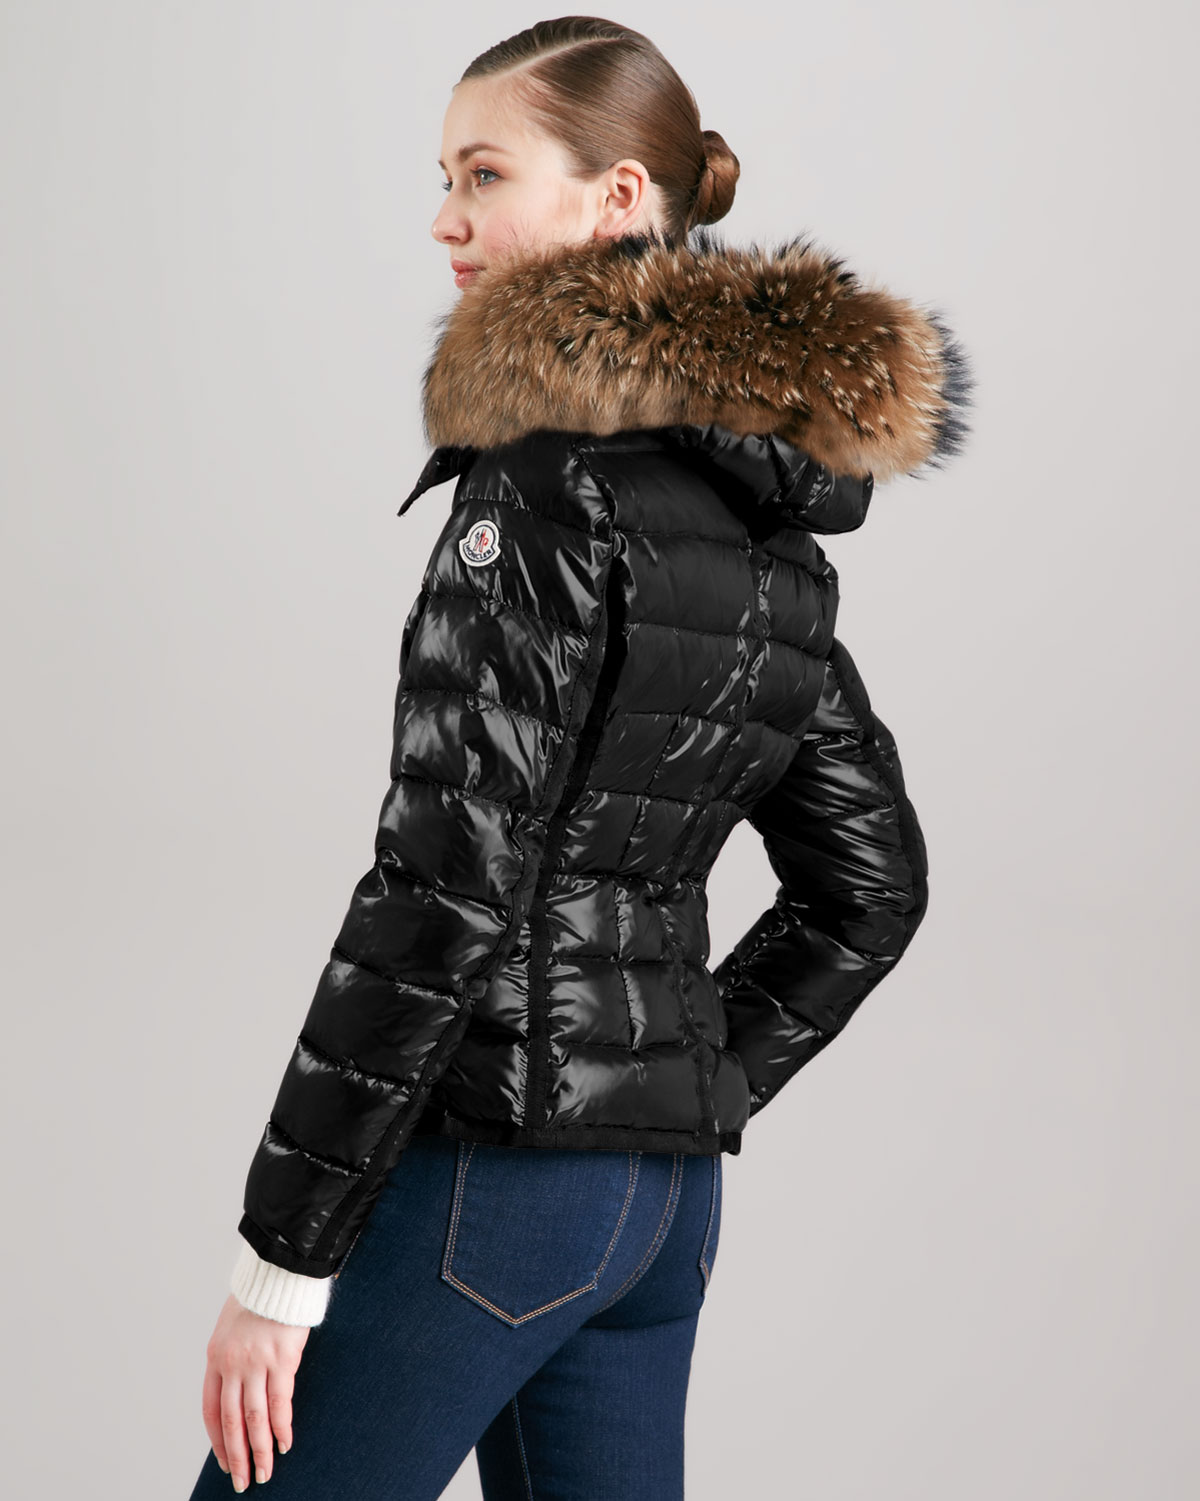 Puffer Jacket With Fur Hood  Outdoor Jacket-8239